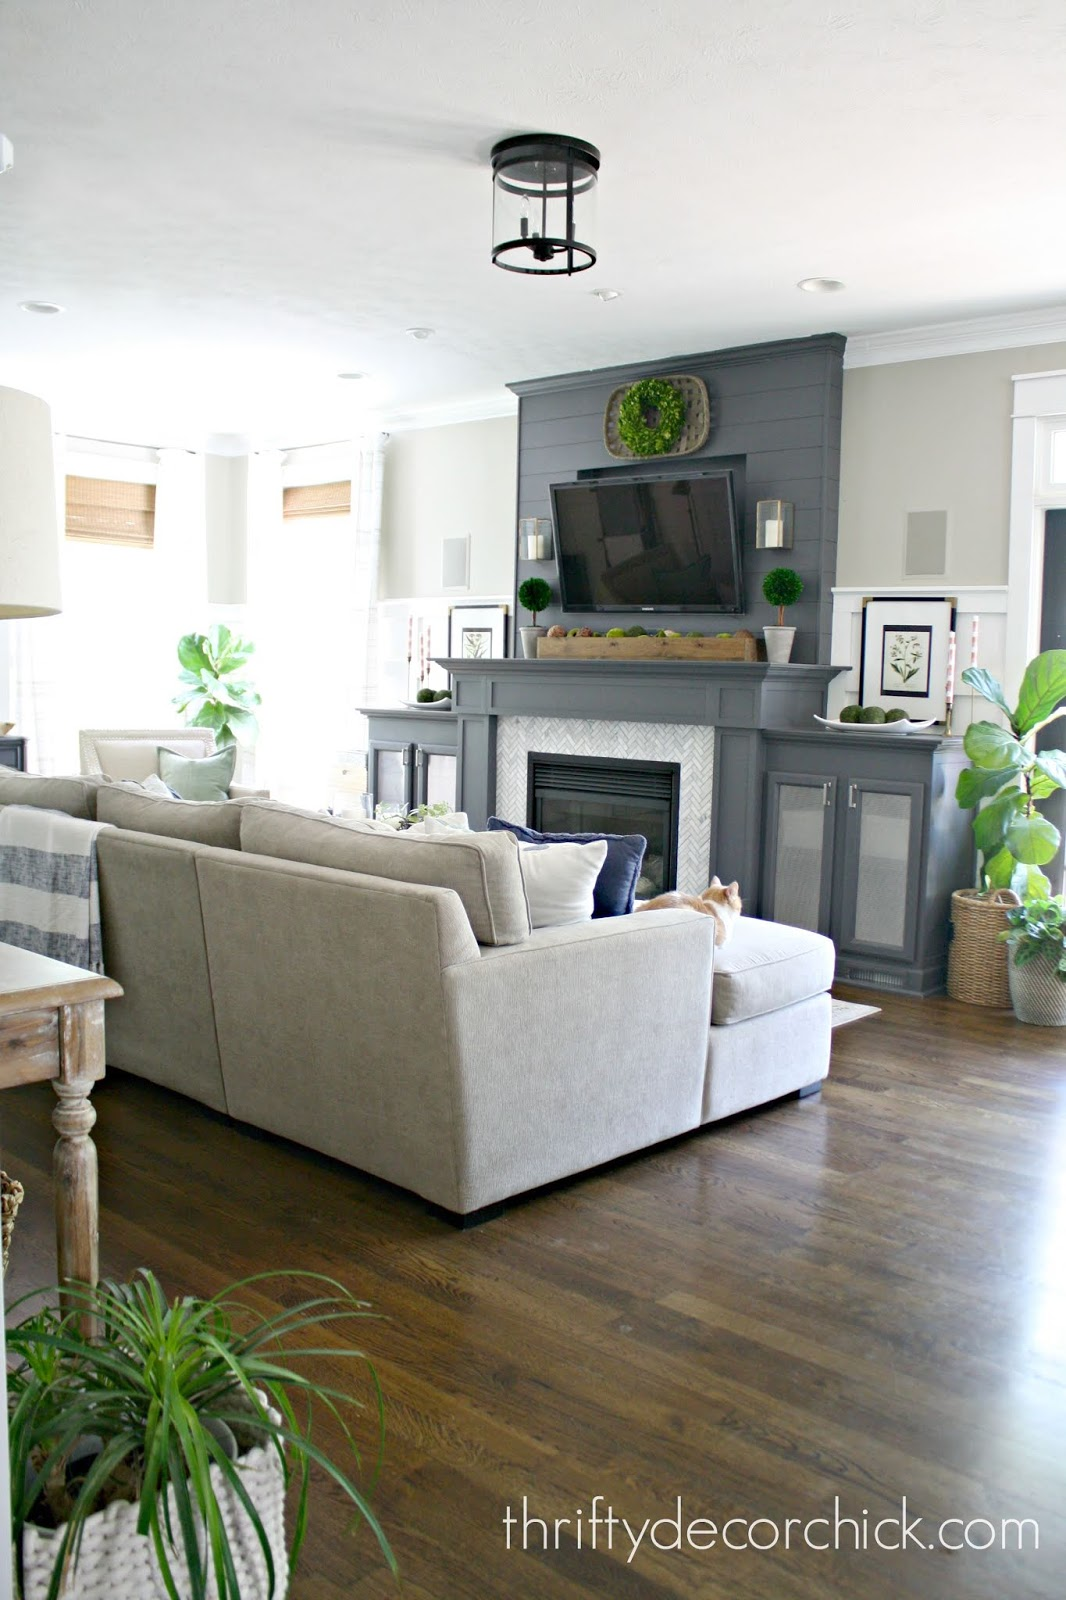 Simple shiplap over fireplace